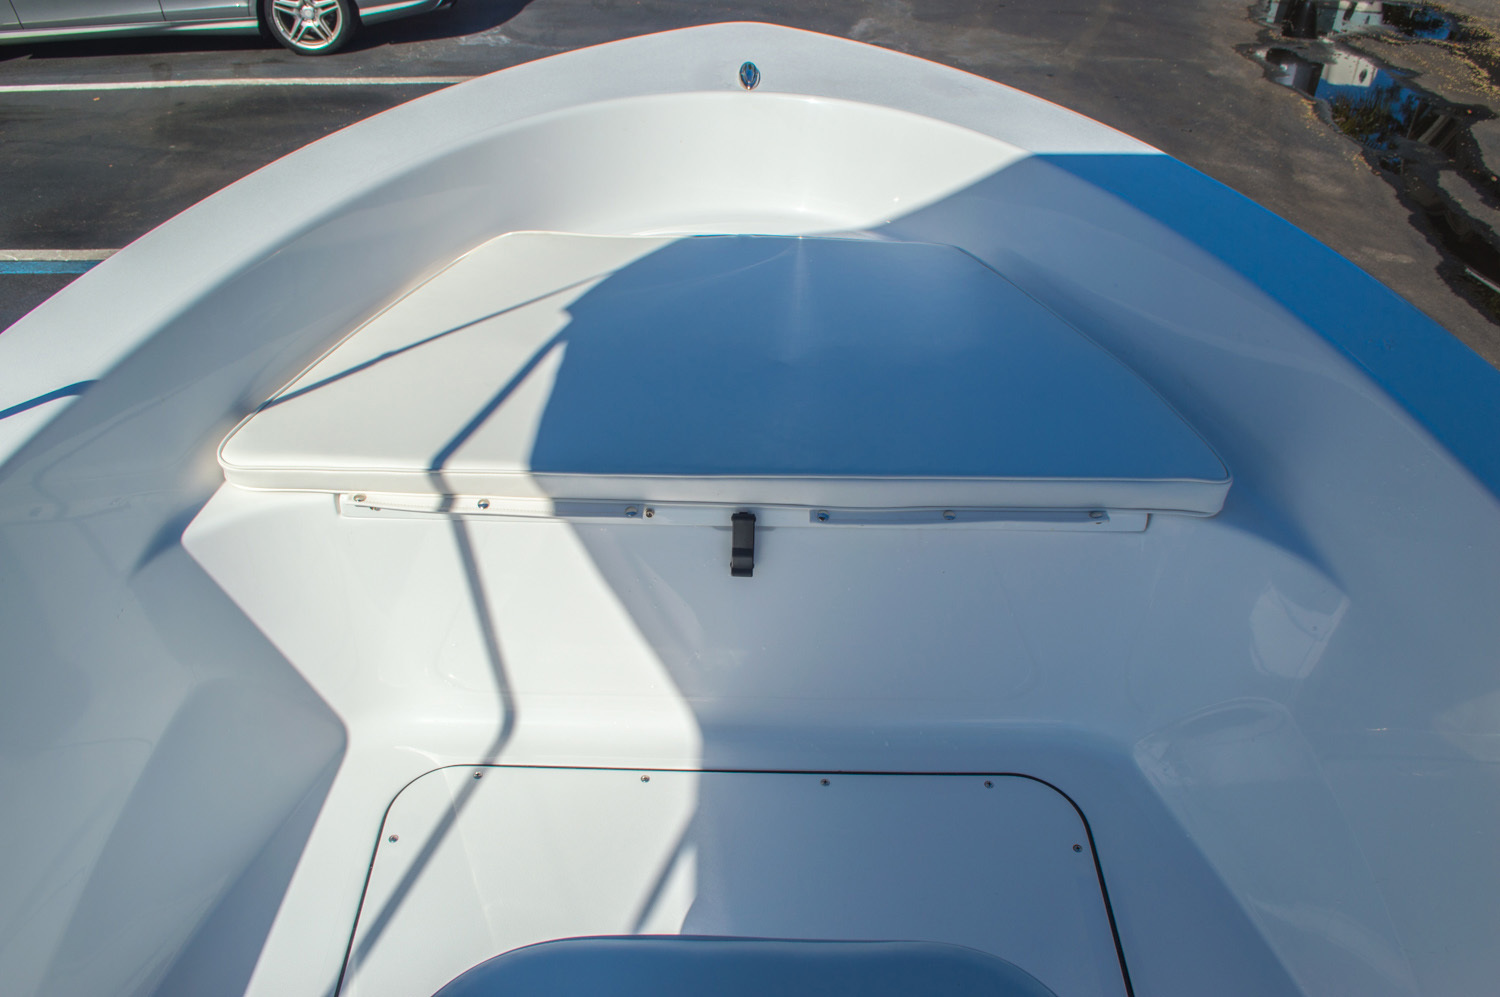 Thumbnail 31 for New 2016 Sportsman 17 Island Reef boat for sale in West Palm Beach, FL